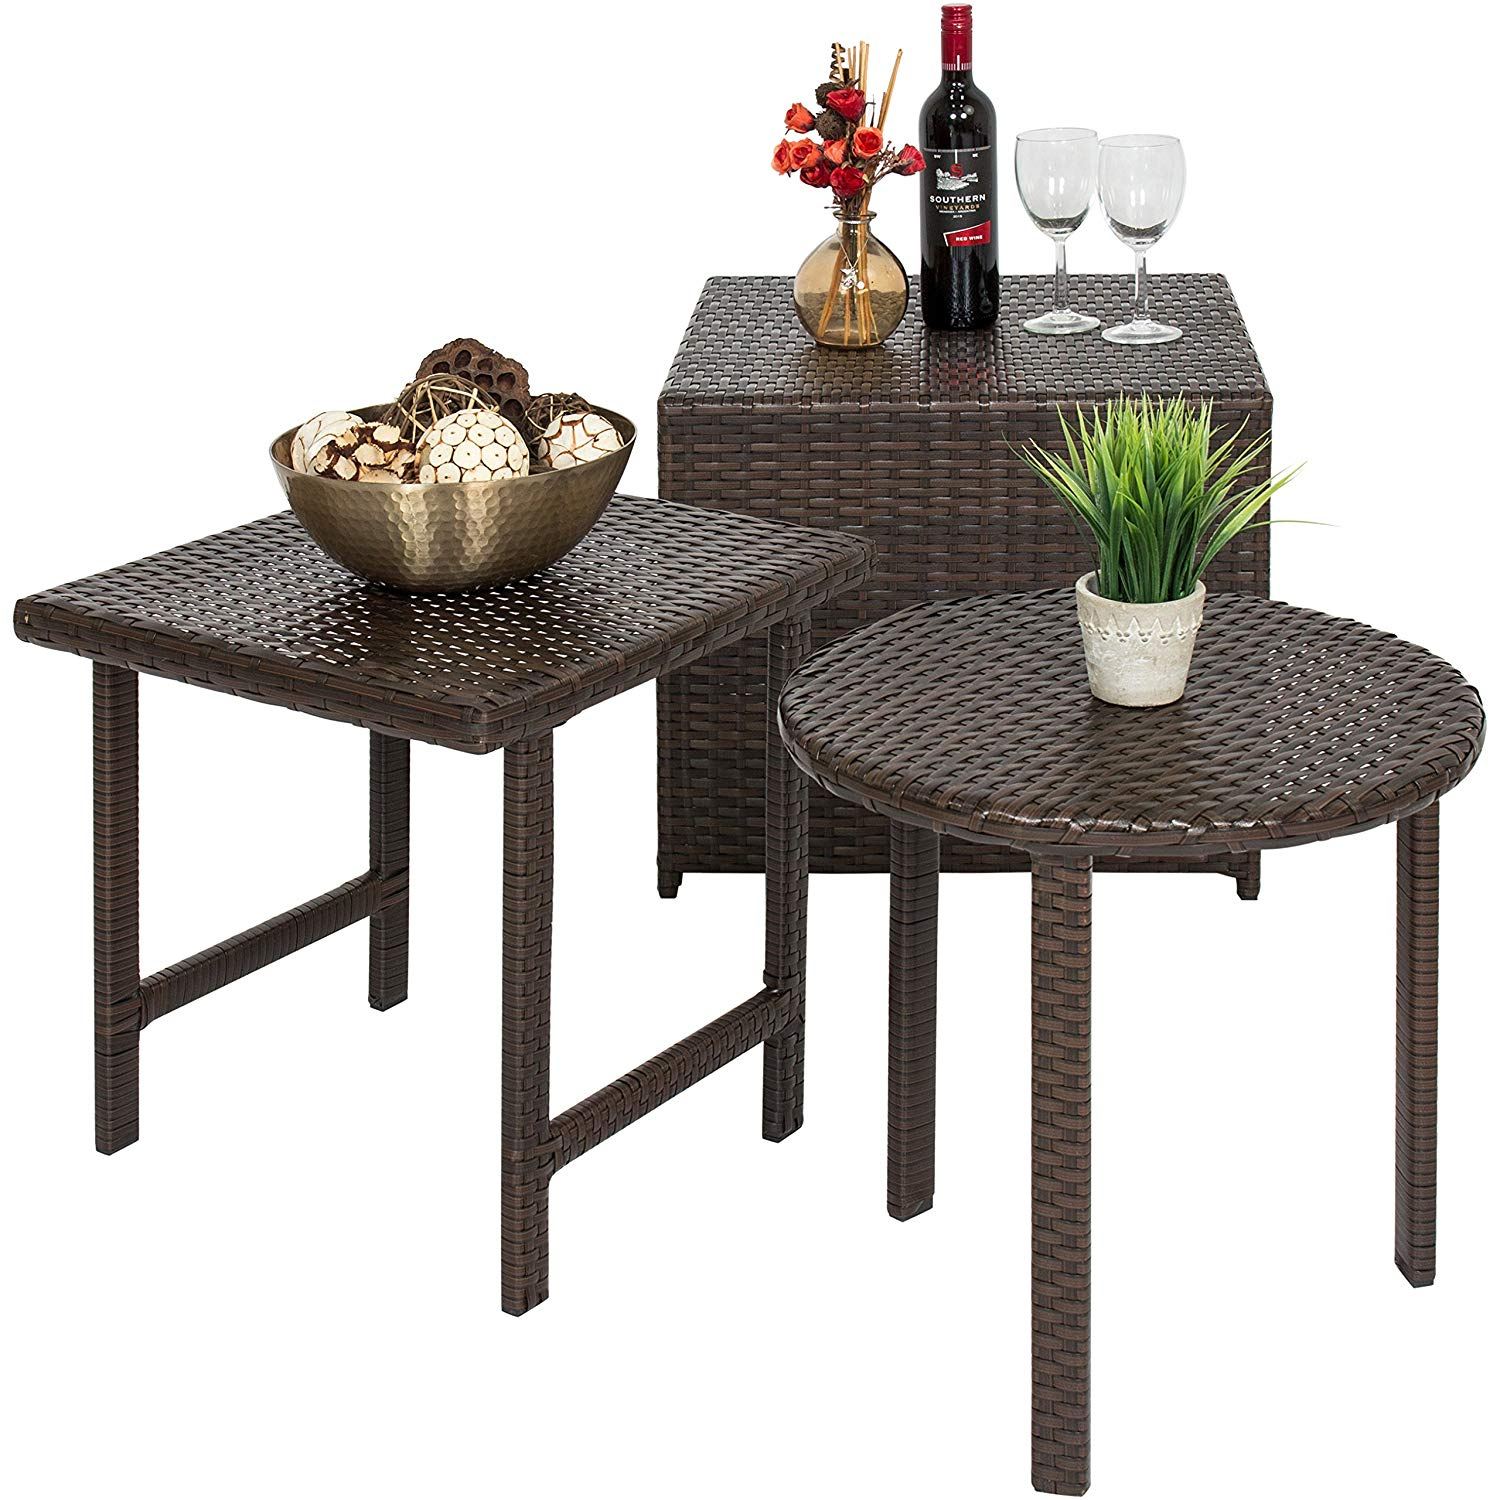 best choice products outdoor patio furniture piece side table and chairs wicker set garden gold lamp with black shade red magnussen allure end under cabinet wine rack metal couch